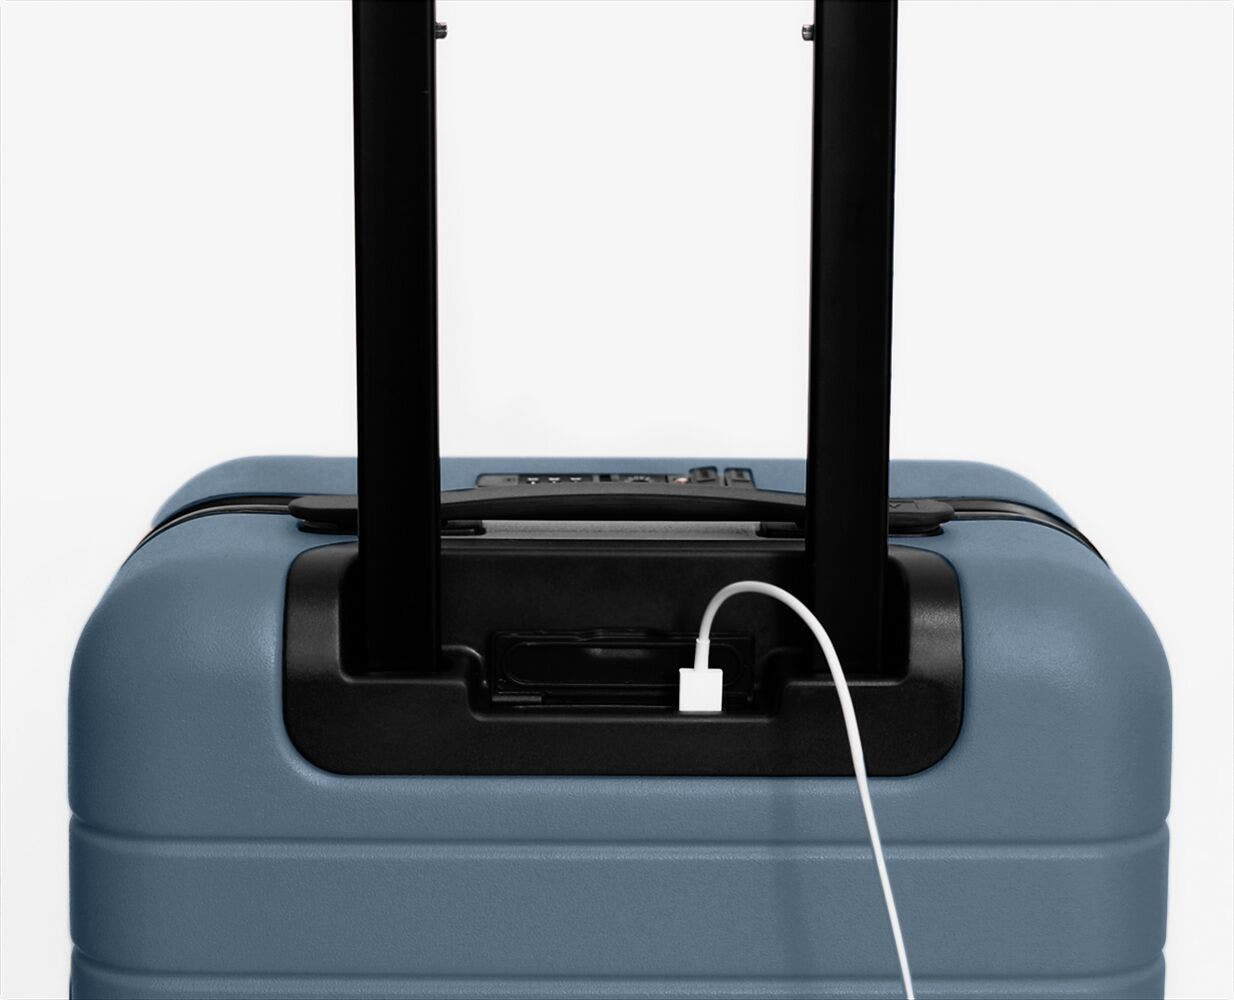 The Carry-On in Coast with charging cord plugged into battery underneath the telescoping handle